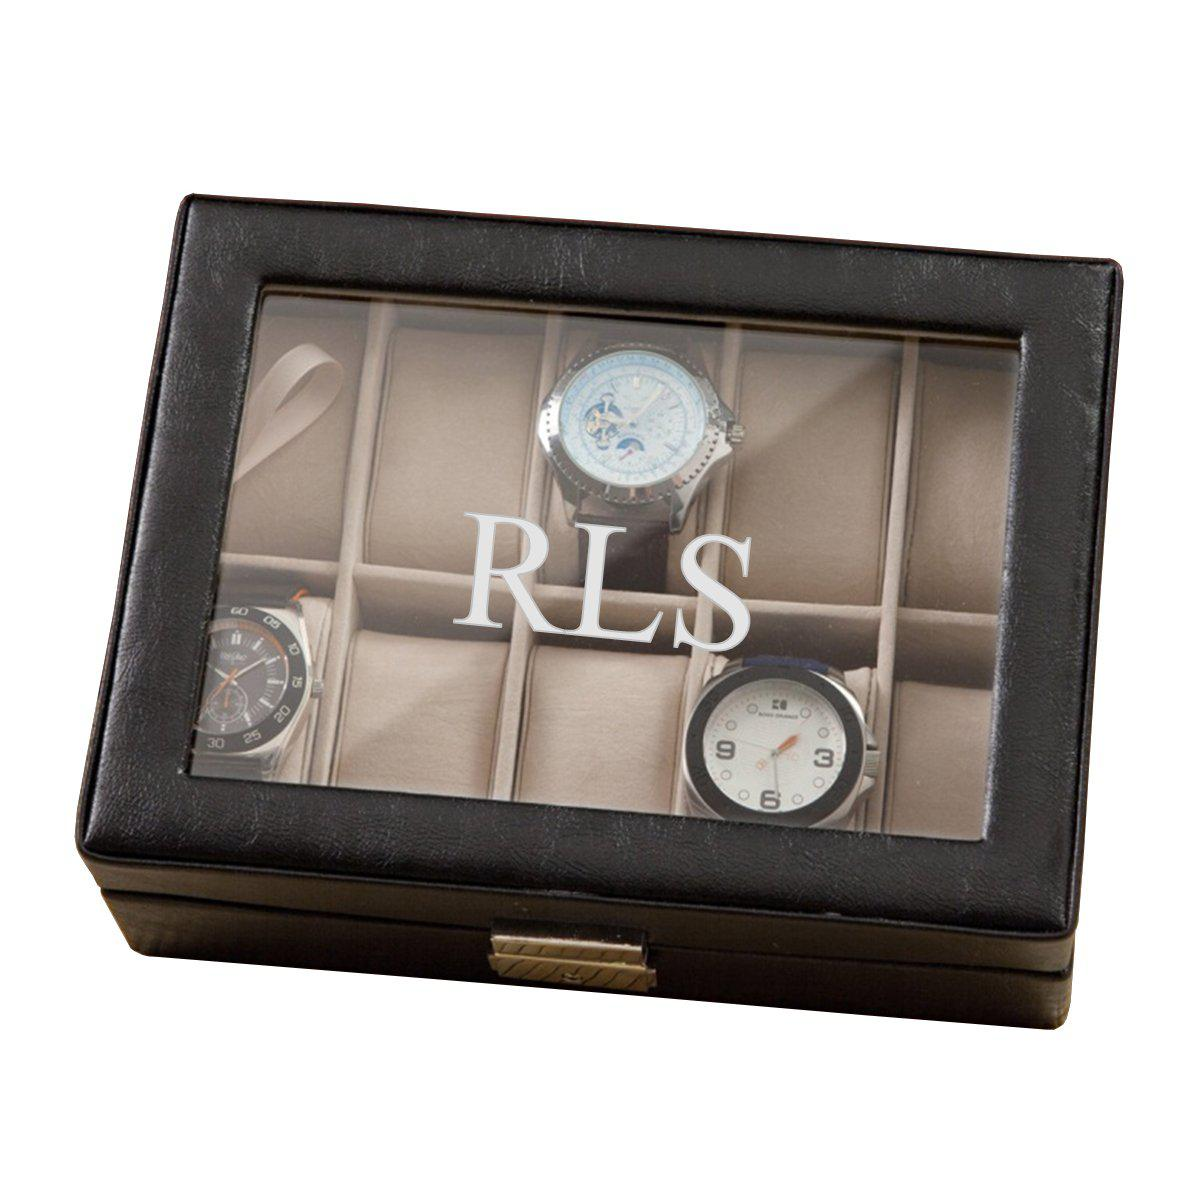 Personalized-Leather-Watch-Box-and-Watch-Case